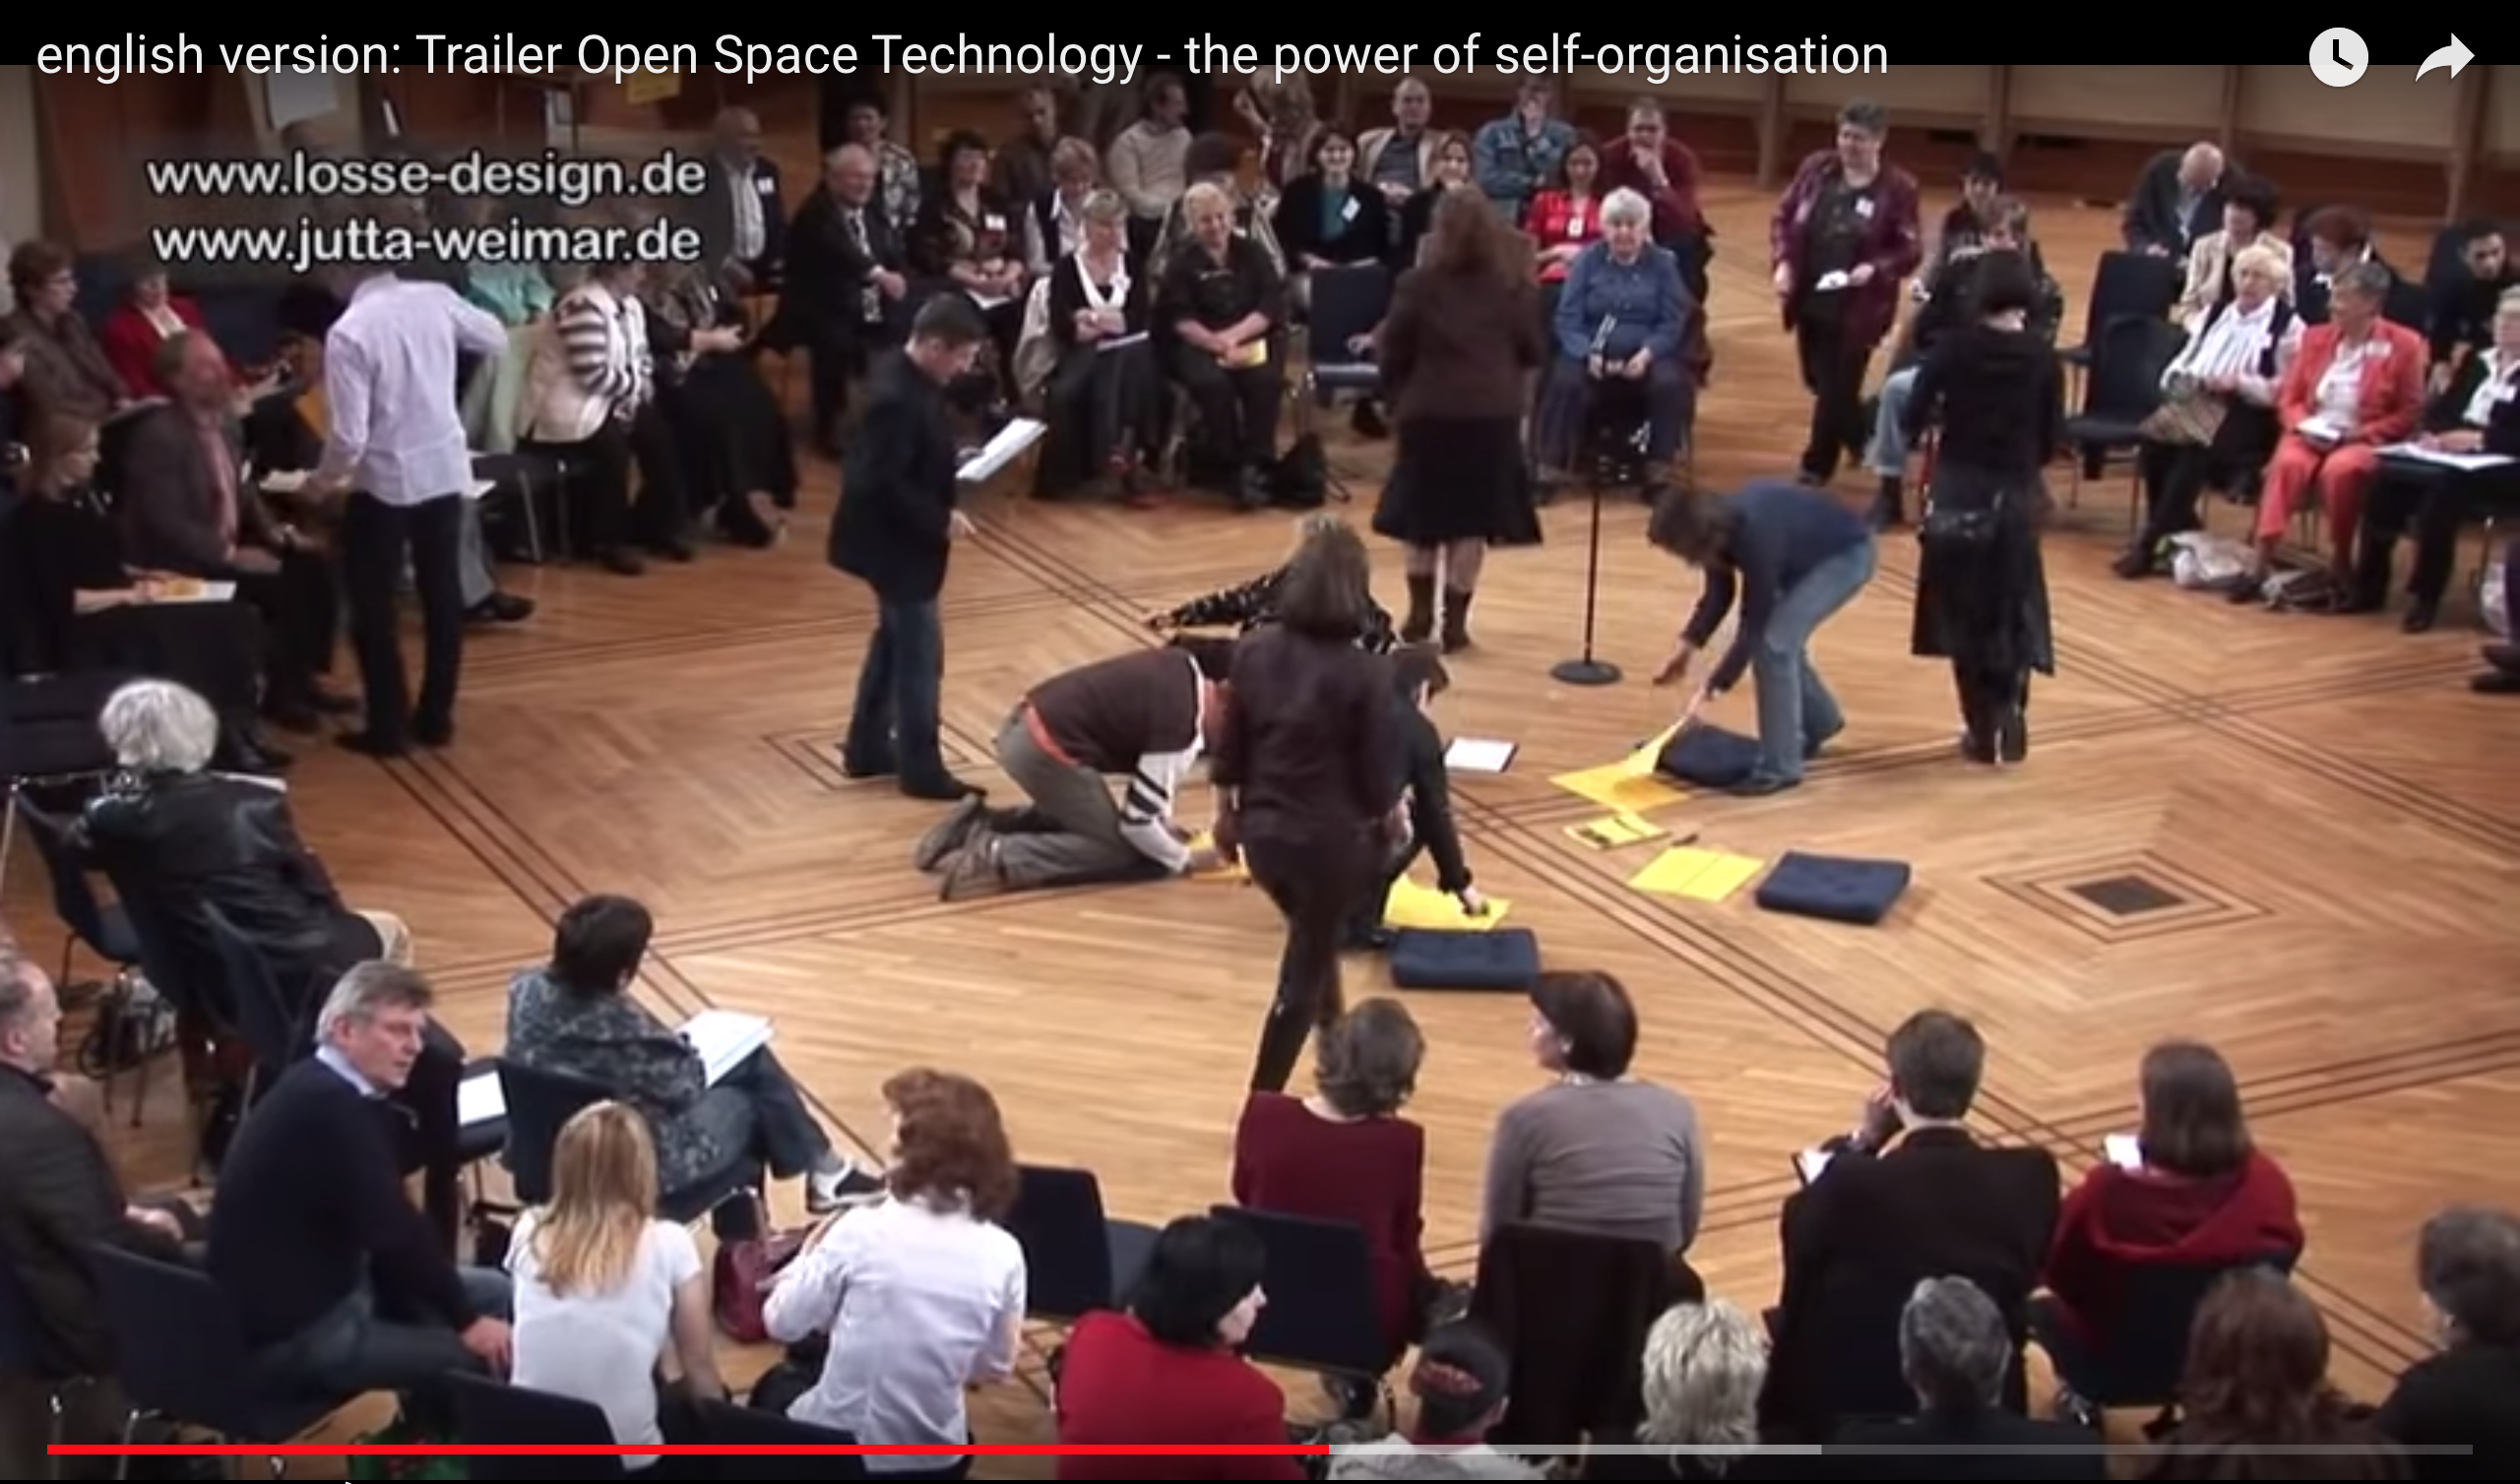 Trailer Open Space Technology The power of self organization